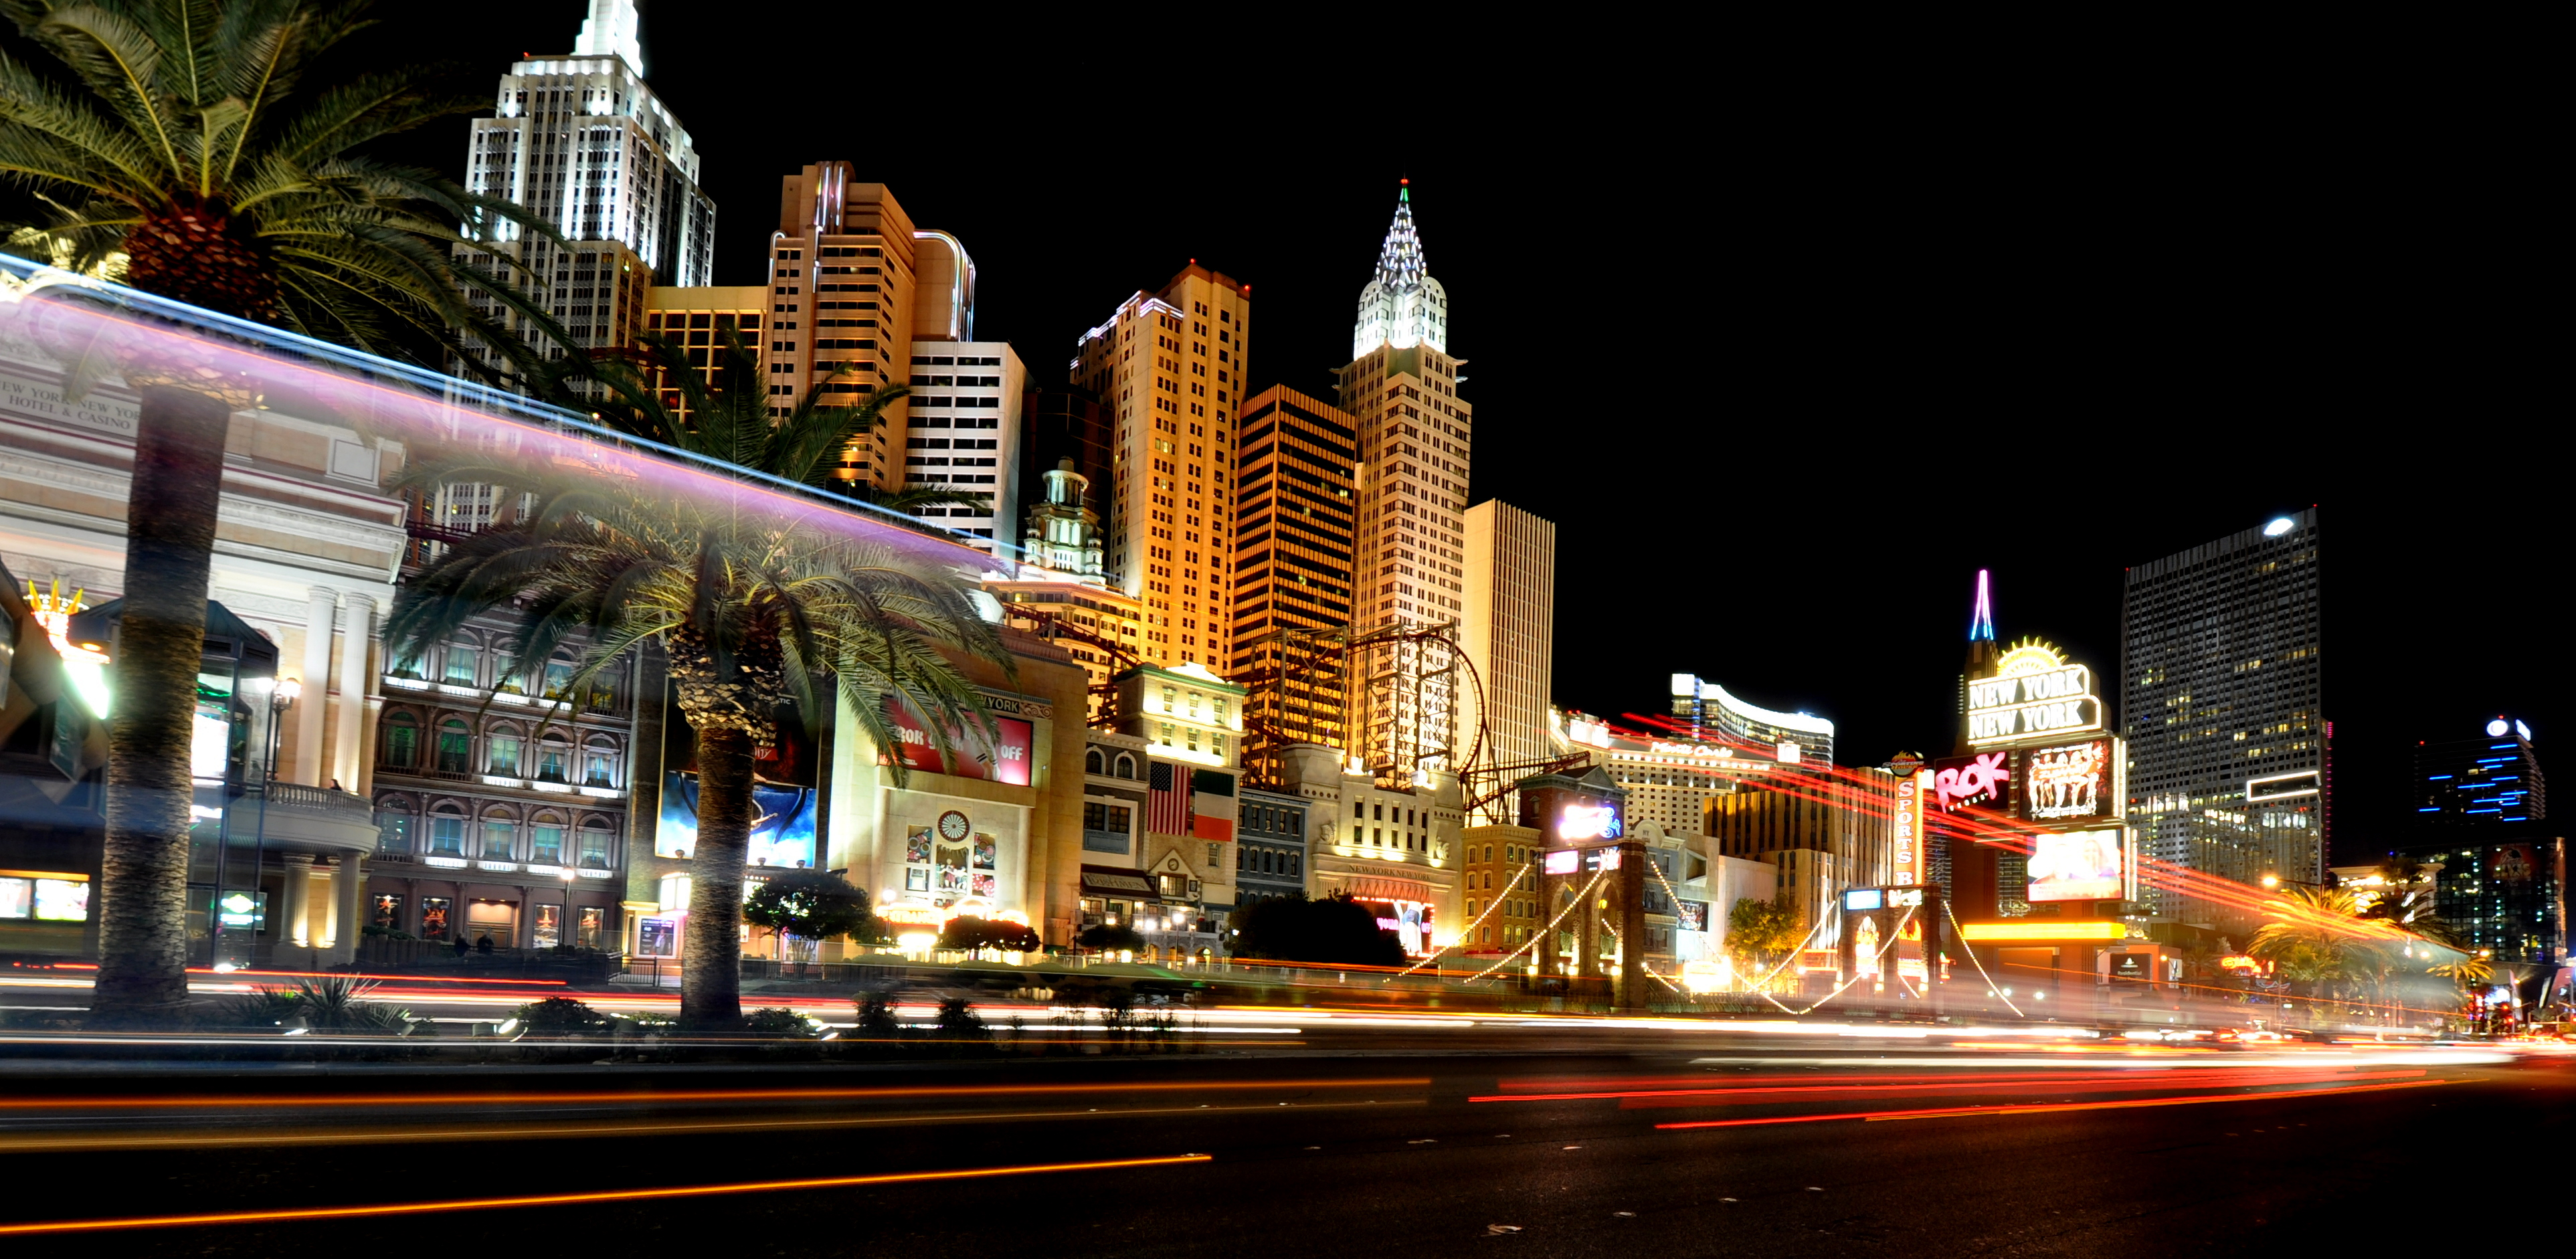 The Grand Hotel And Casino Las Vegas